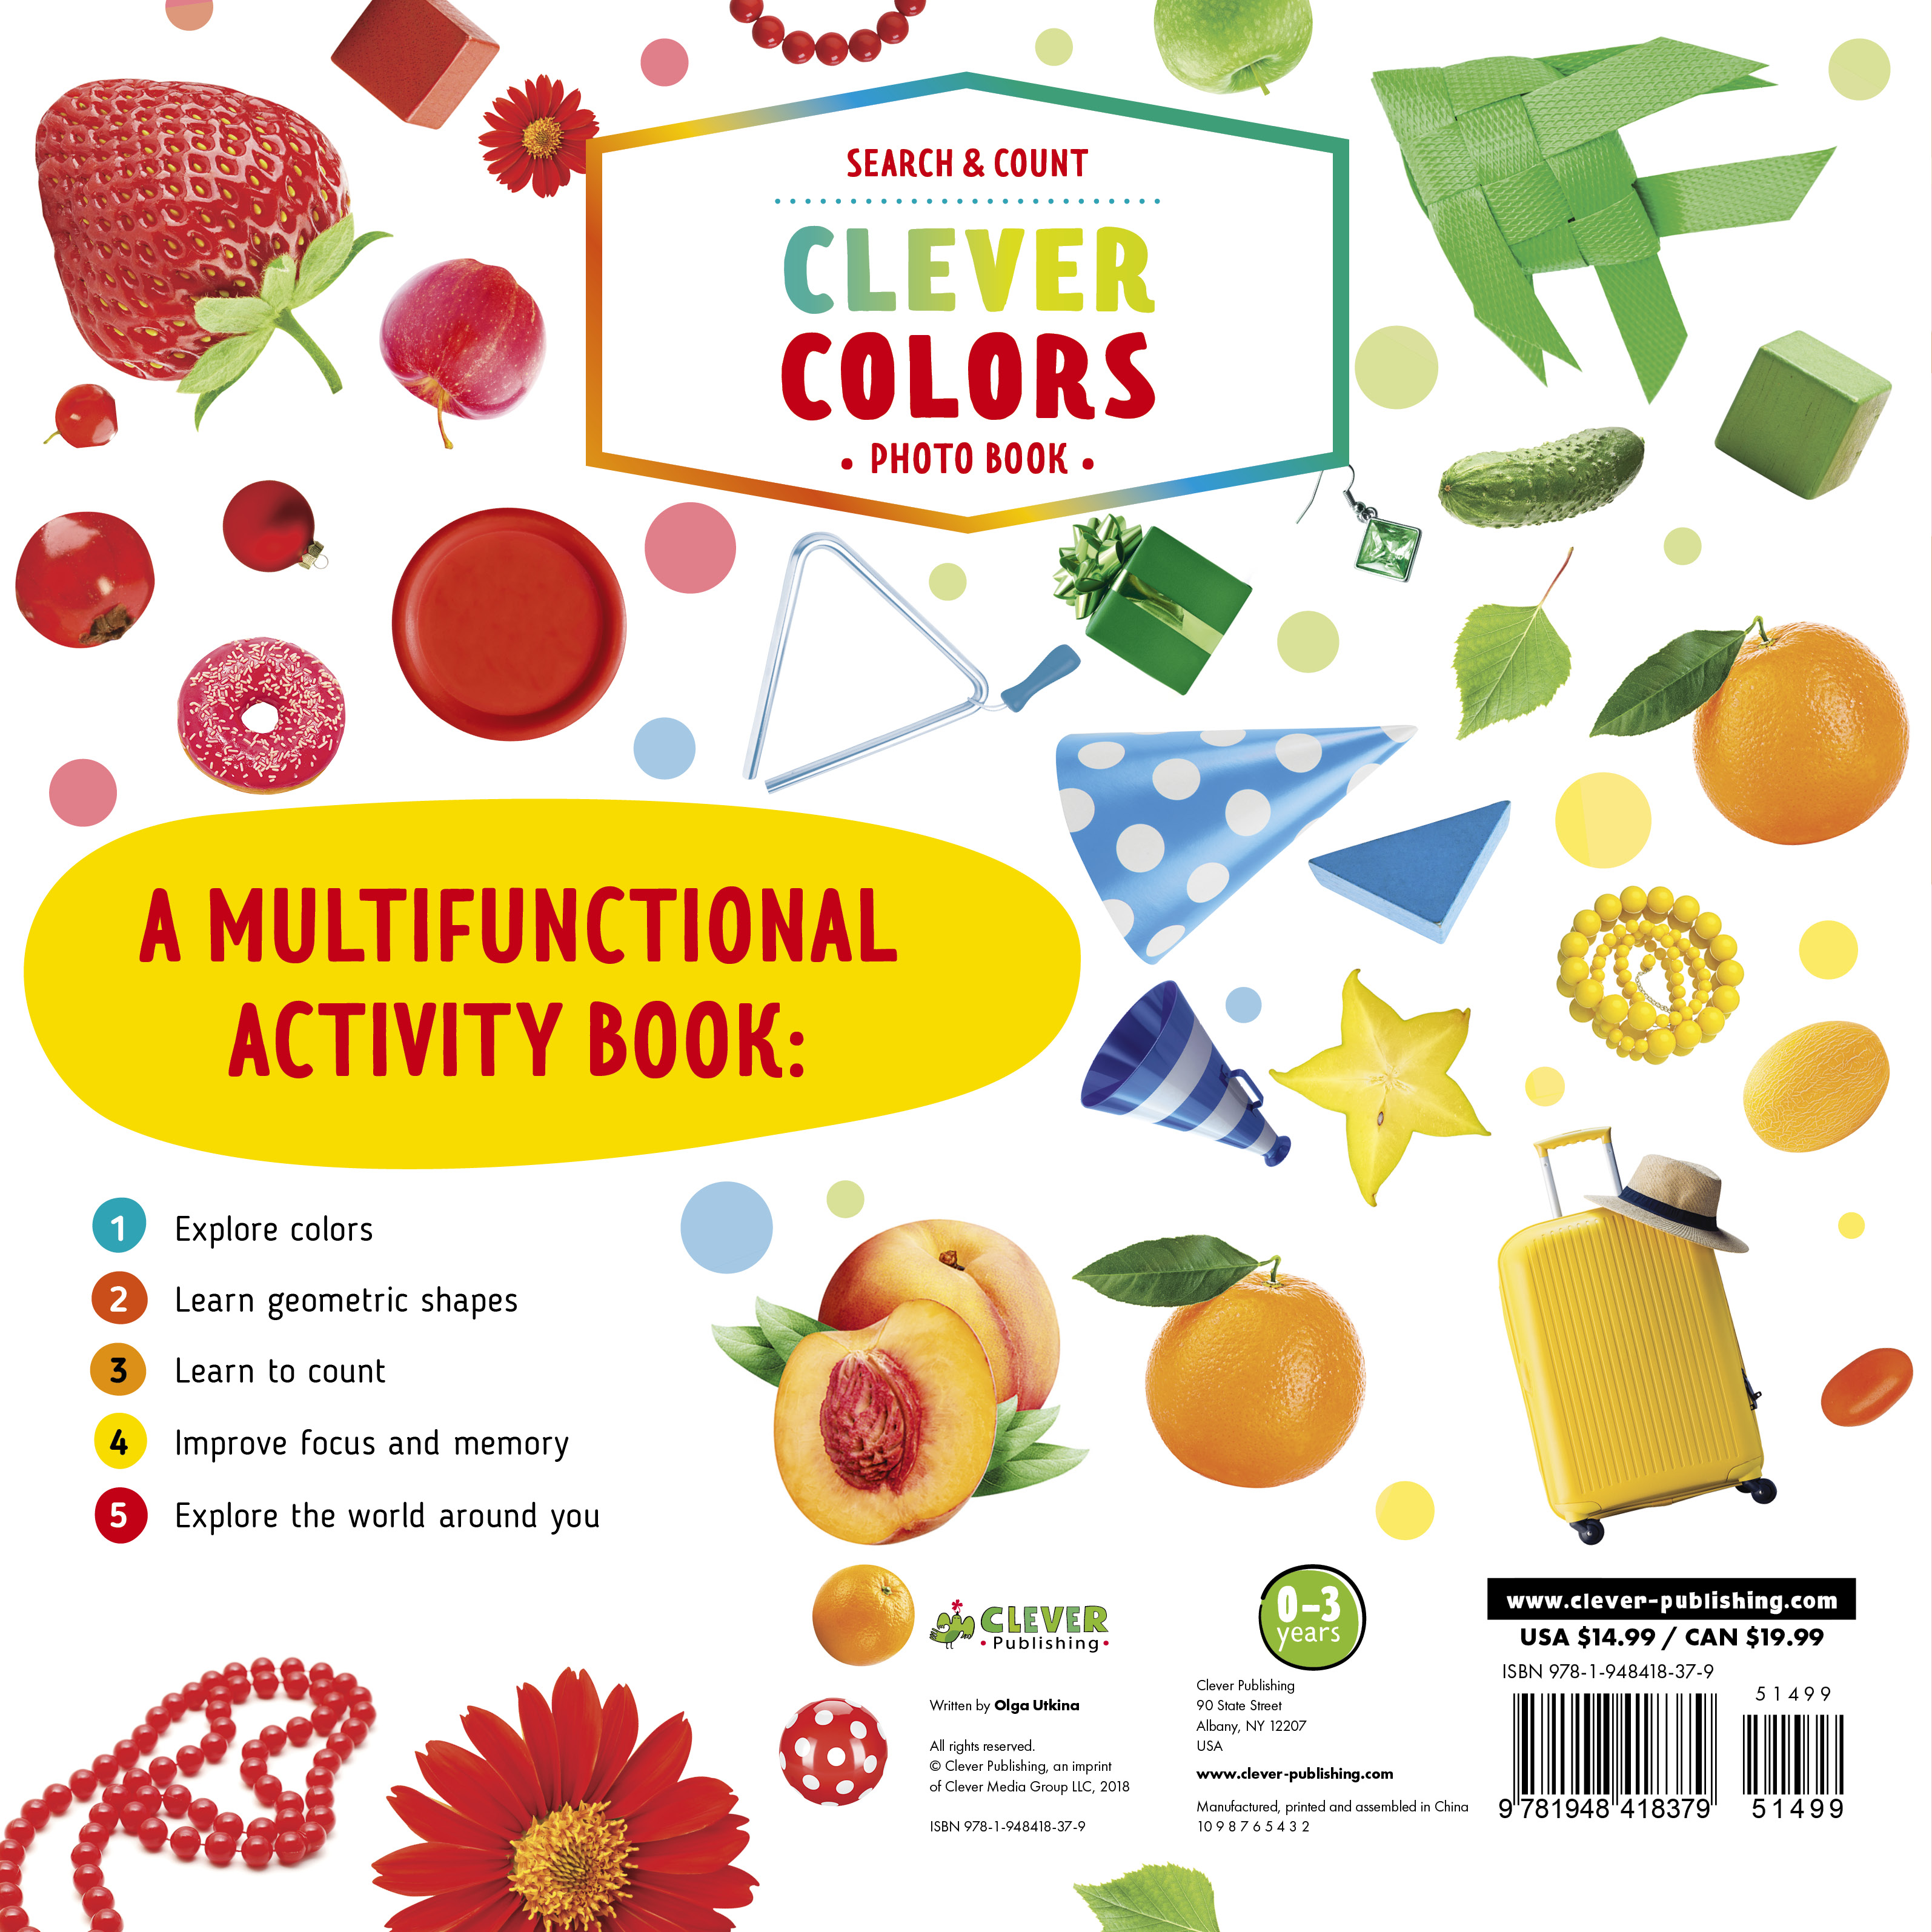 Clever Colors Photo Book : 700 Things To Learn - Walmart com